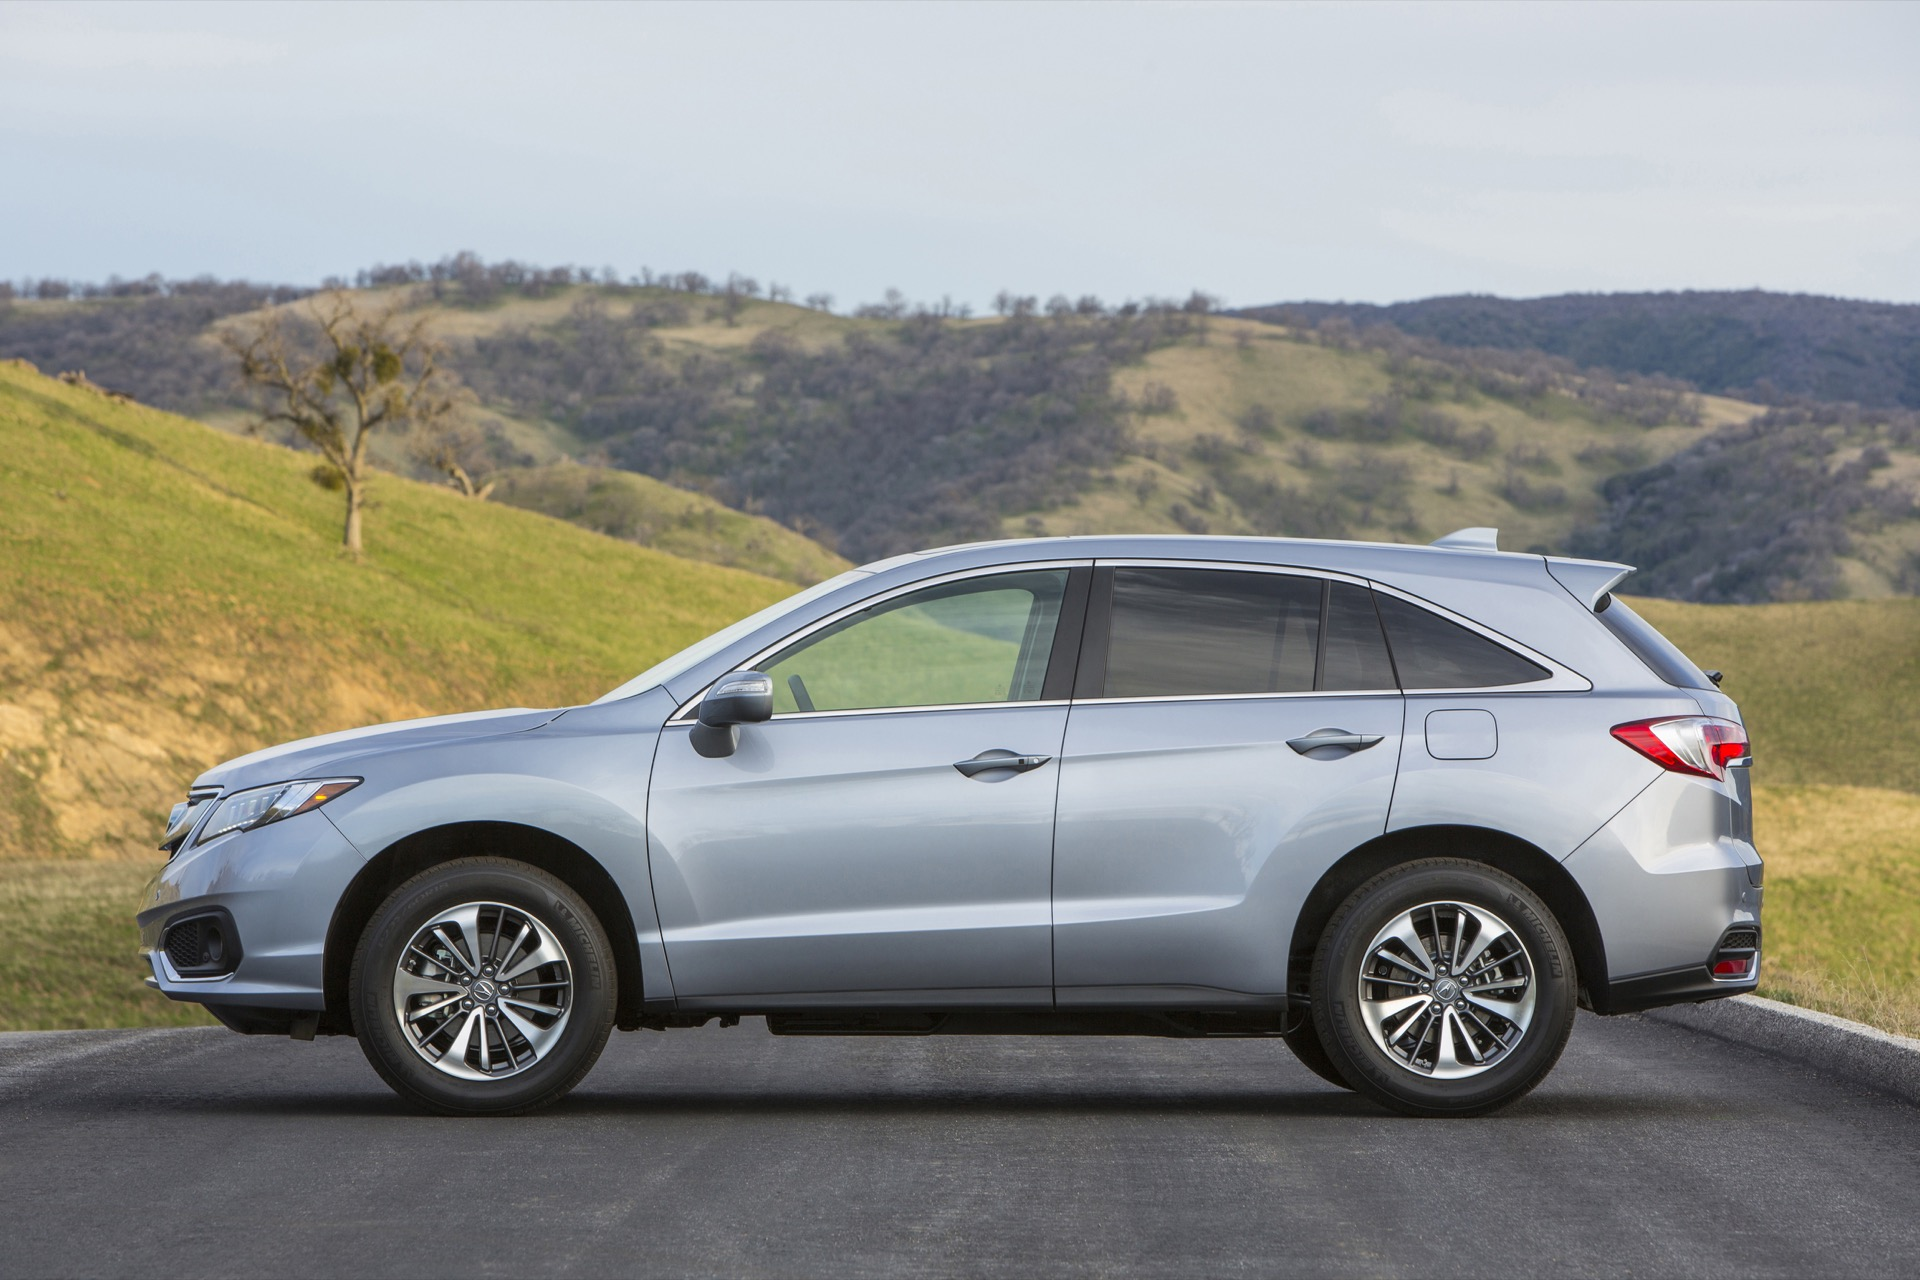 2017 acura rdx gas mileage the car connection